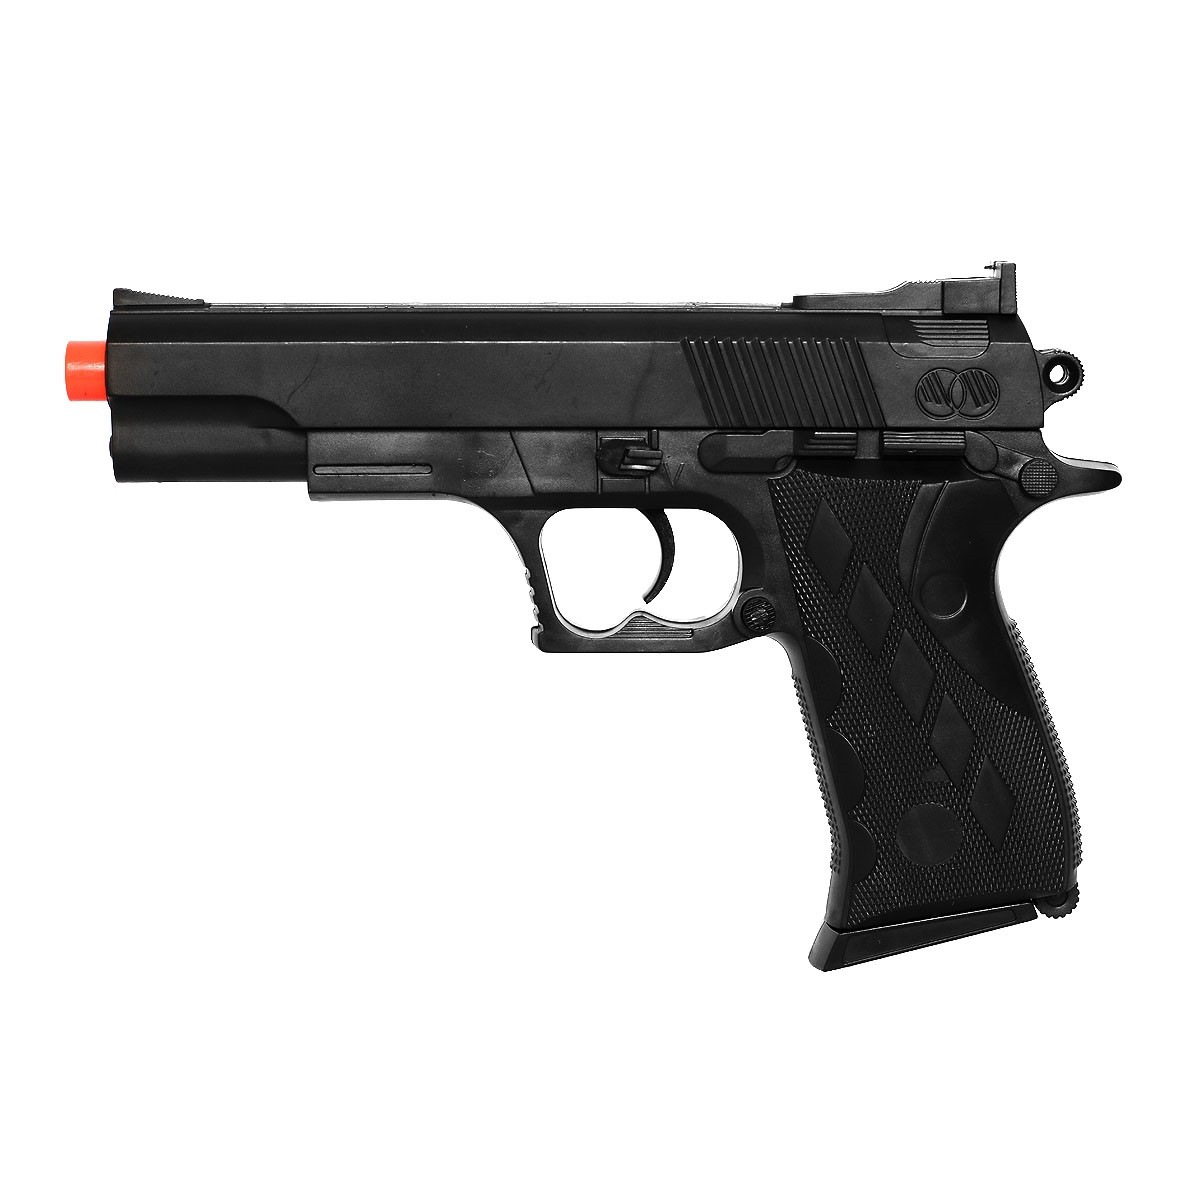 Pistola de Airsoft Vigor 1911 SW-2122A1 Mola 6mm